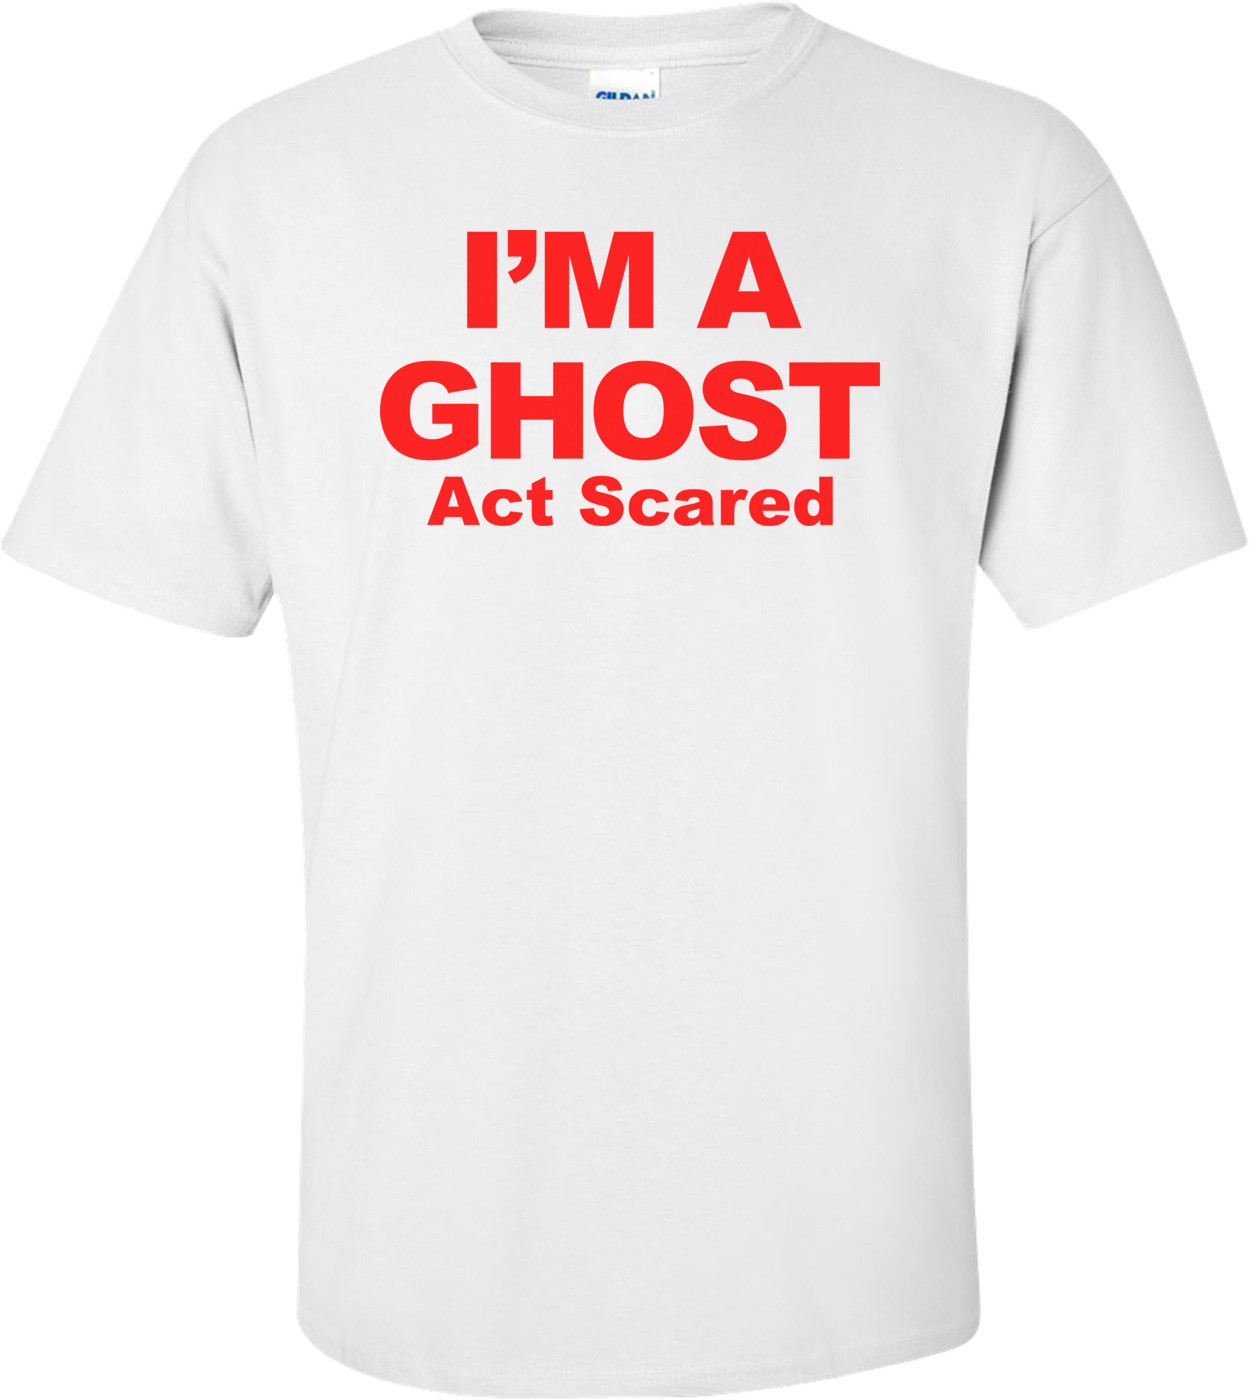 I'm A Ghost Act Scared - Halloween